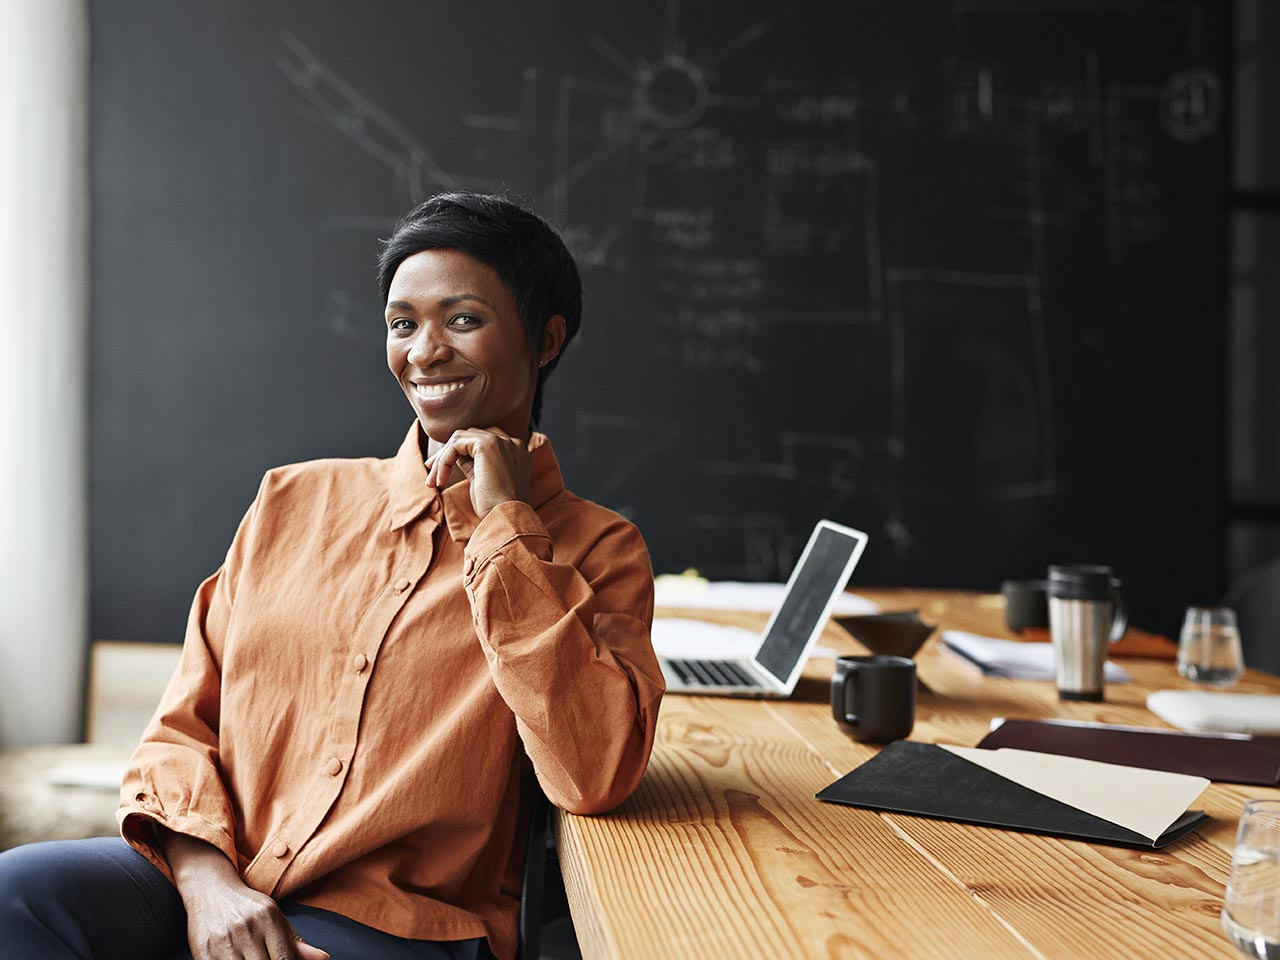 Woman smiling and working on a computer